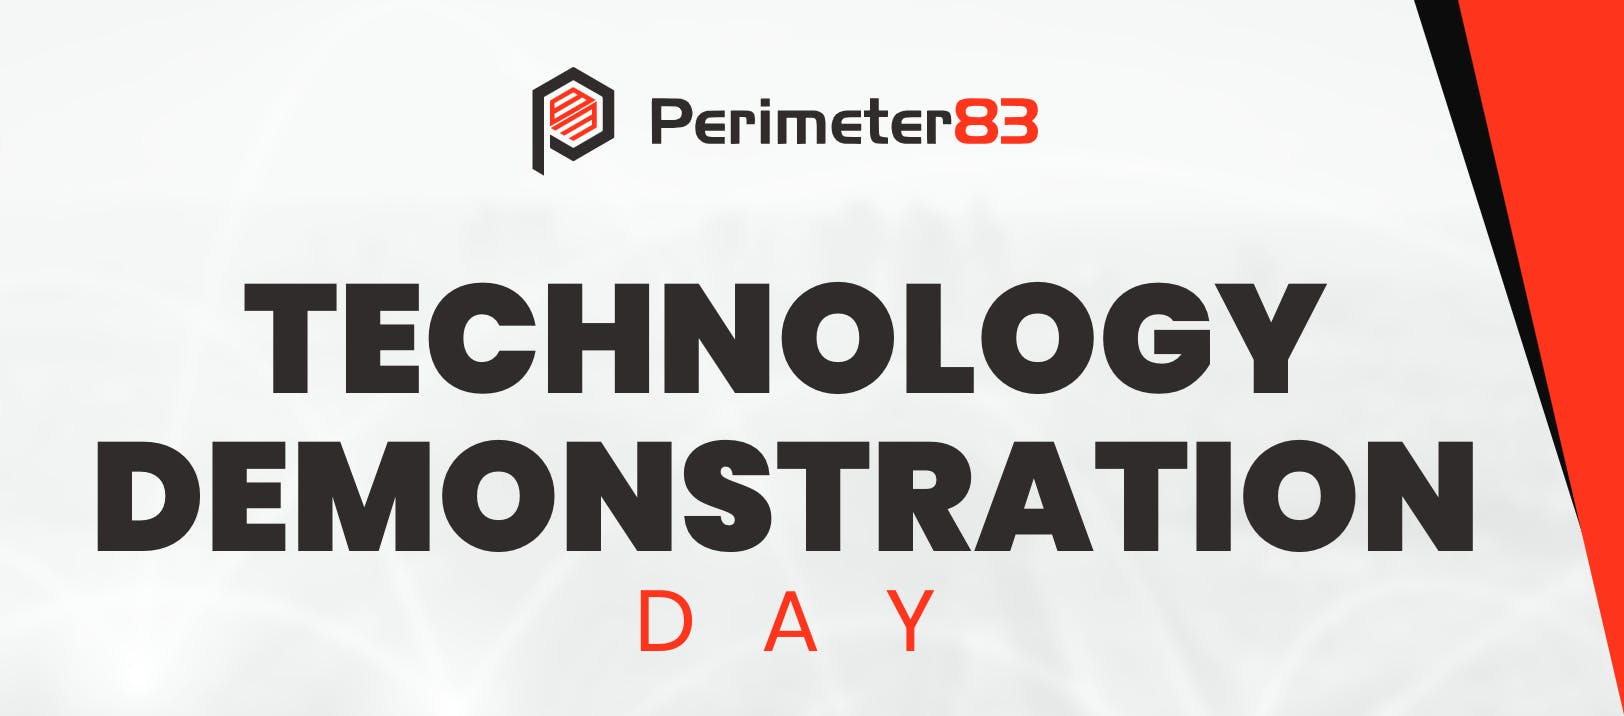 Perimeter83 Technology Demonstration Day